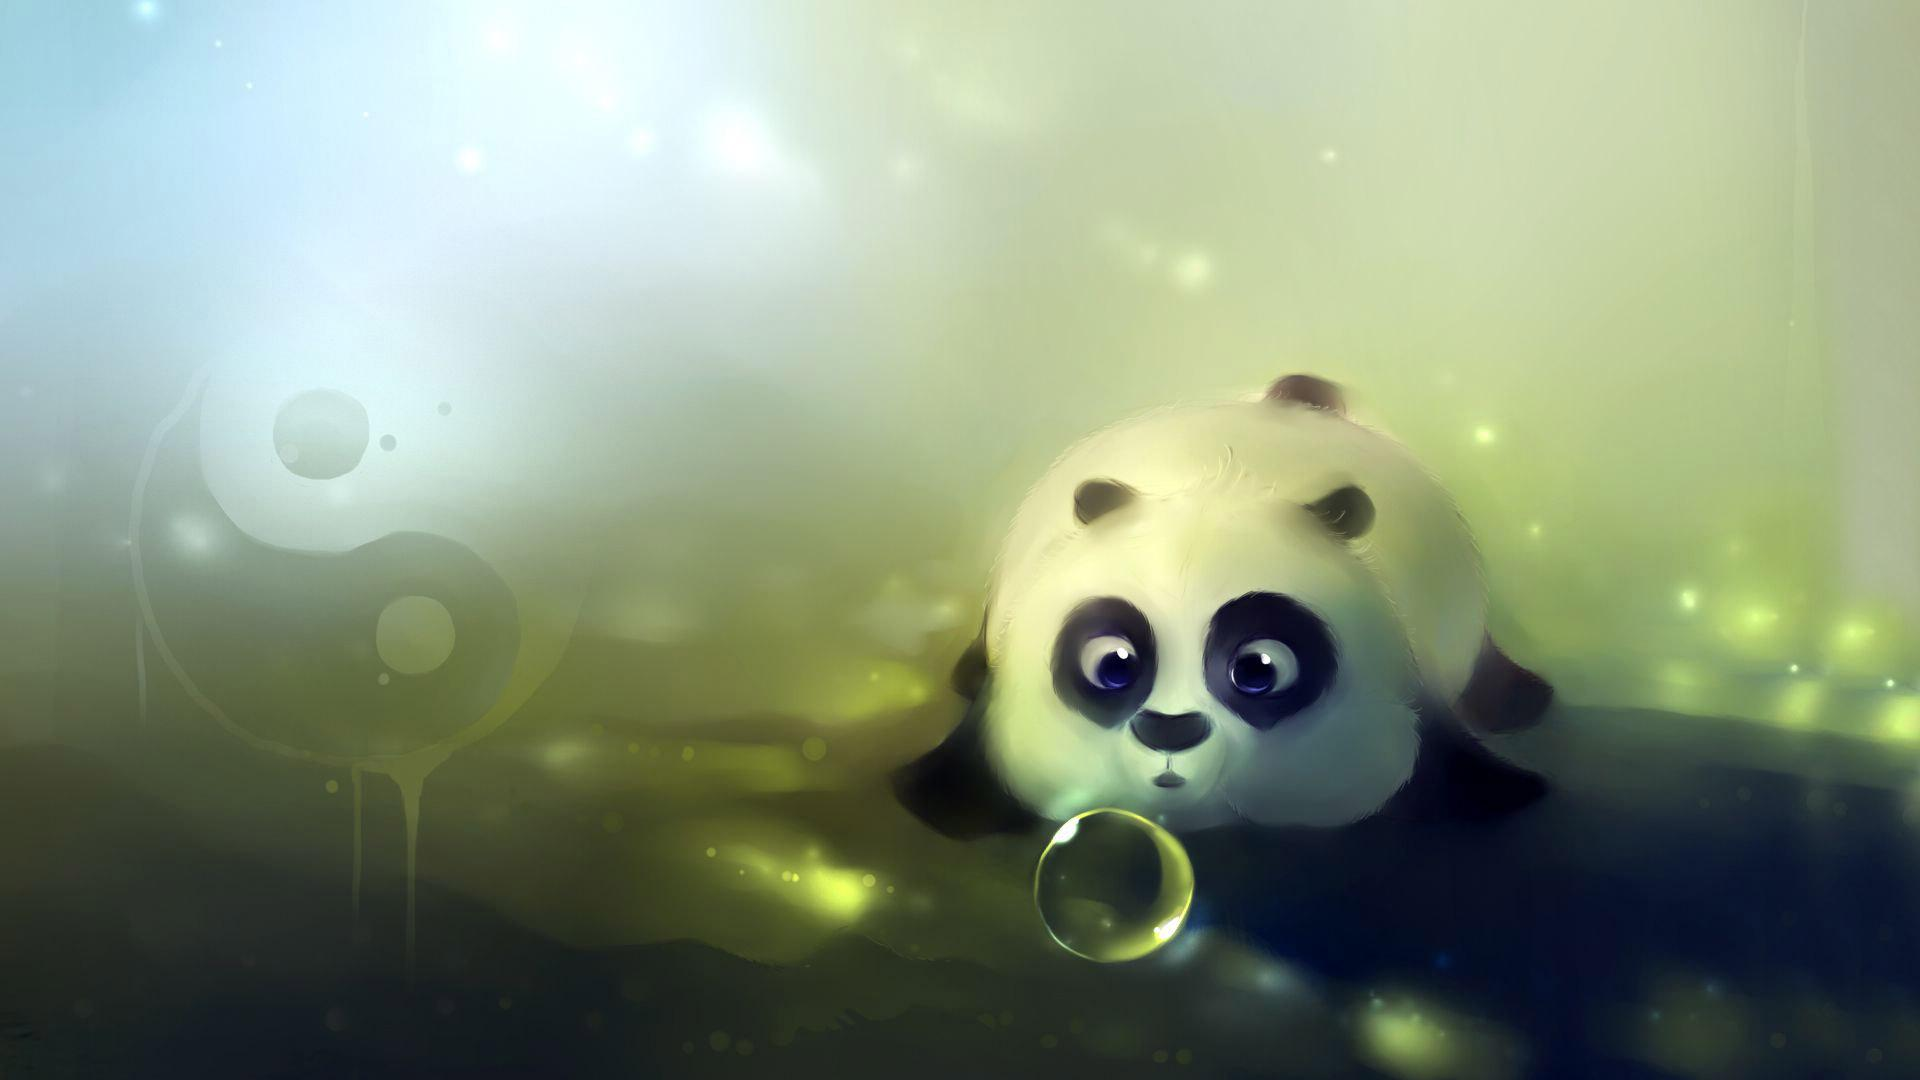 1920x1080px cute laptop backgrounds - wallpapersafari